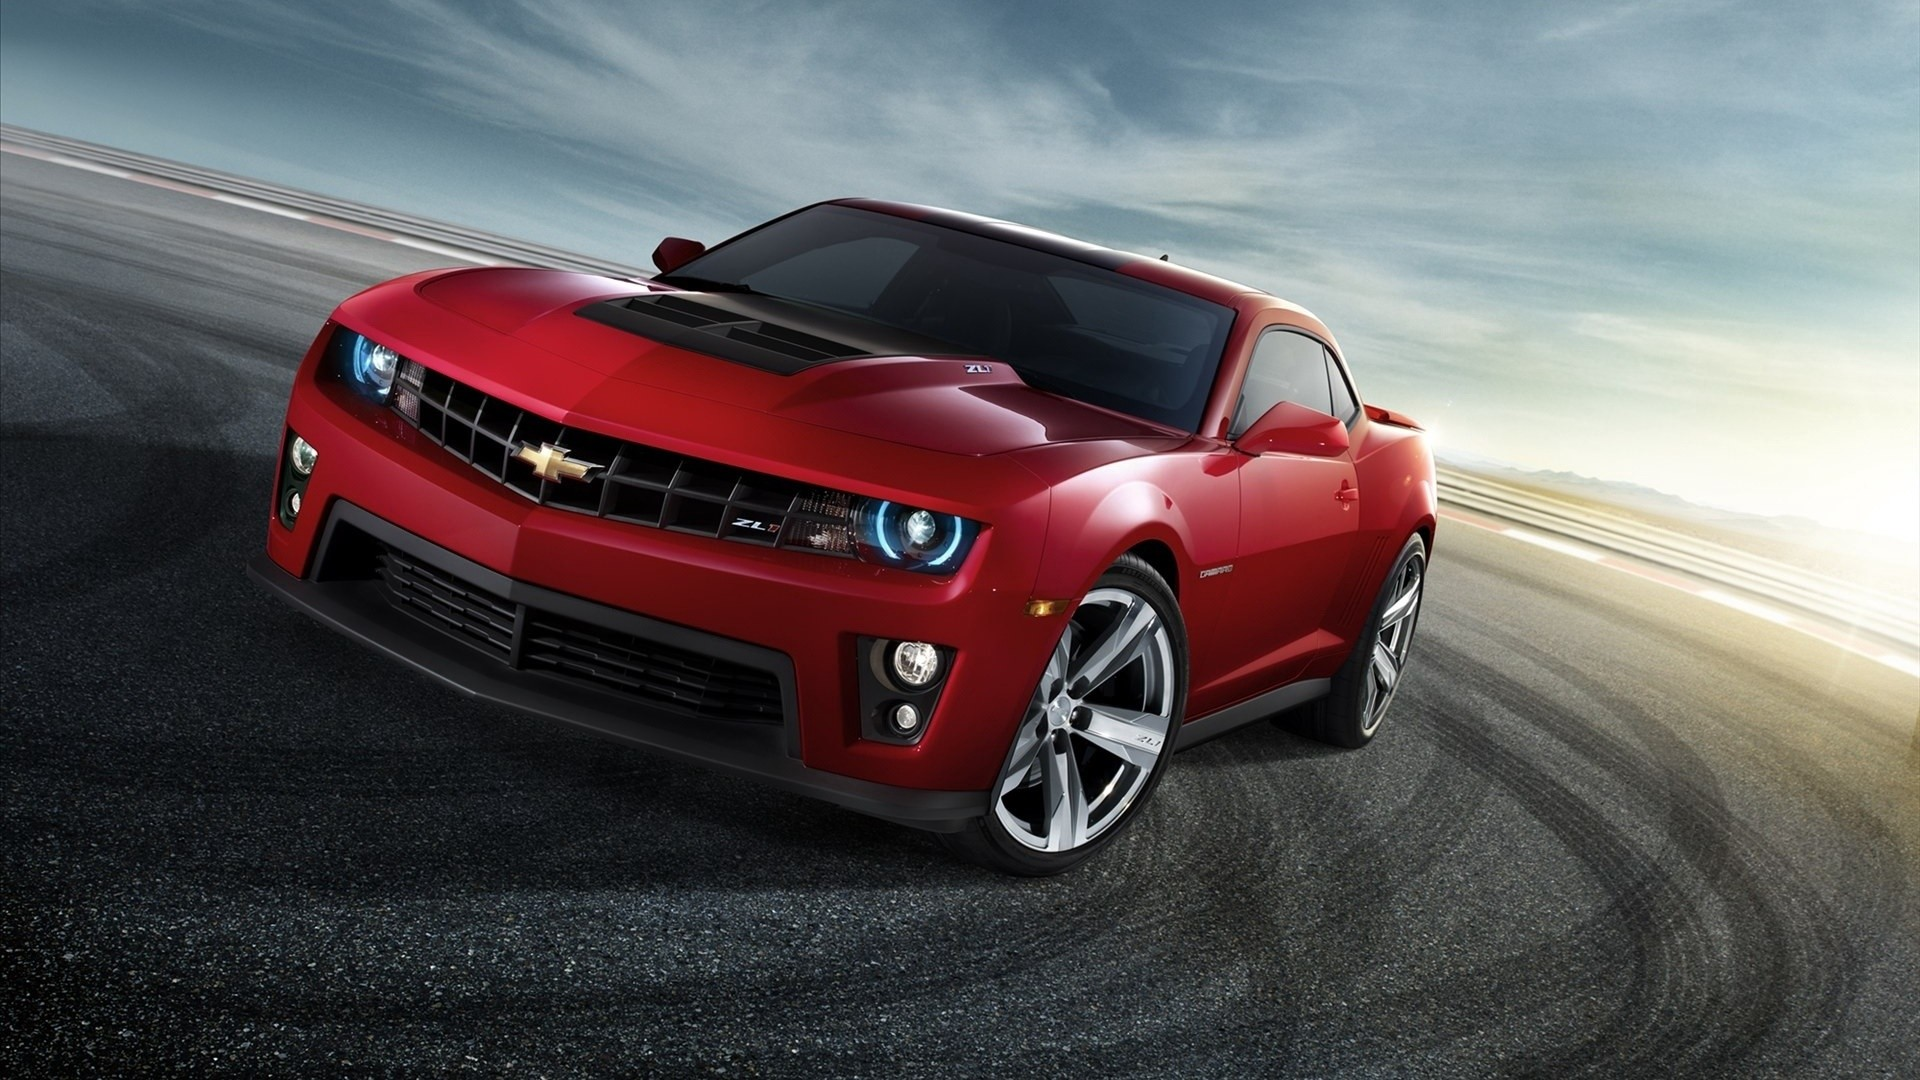 Res: 1920x1080, Chevrolet Camaro ZL1 Wallpaper | Wallpaper Studio 10 | Tens of thousands HD  and UltraHD wallpapers for Android, Windows and Xbox